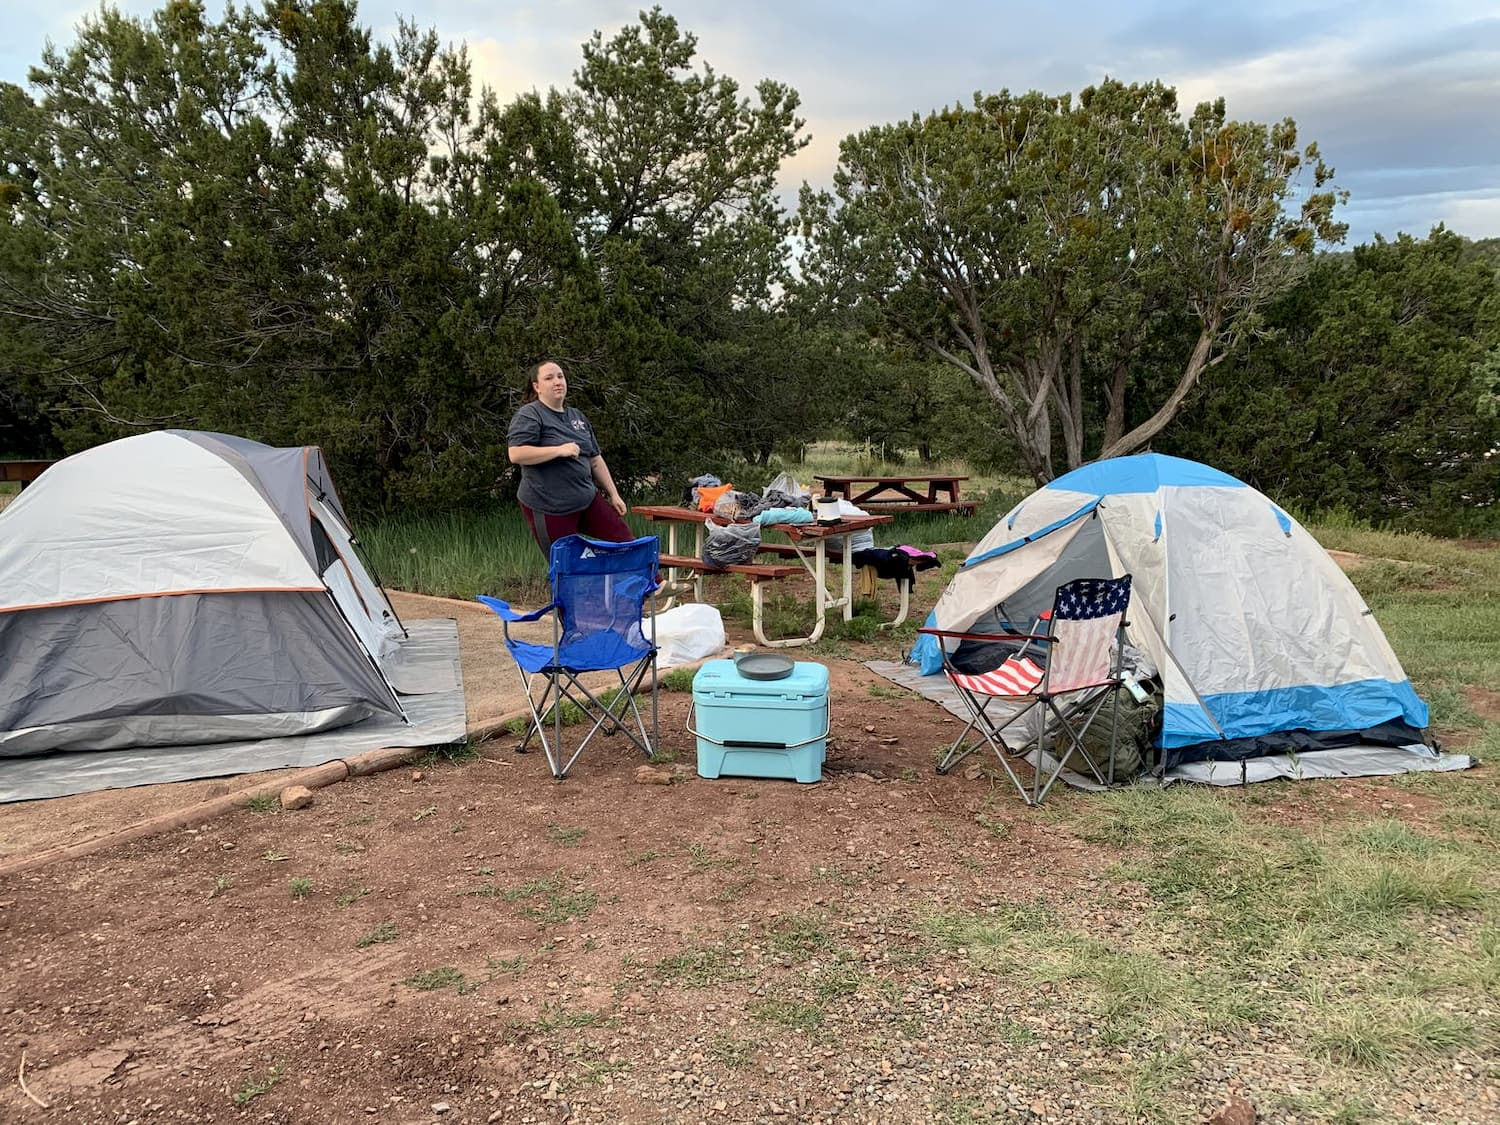 woman standing between two tents at campsite